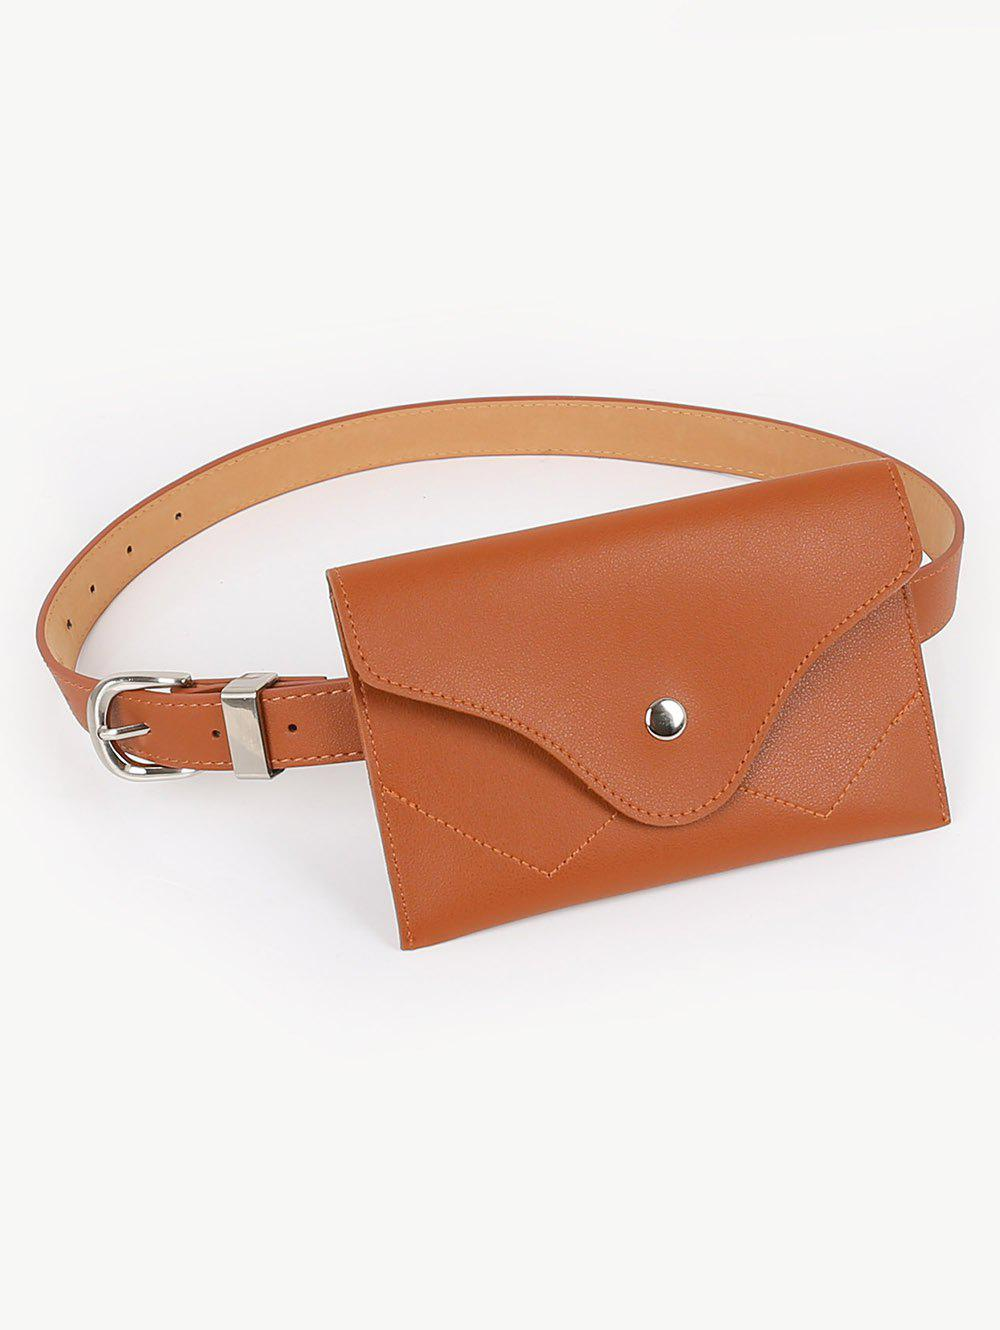 Shops Pin Buckle Fanny Pack Waist Belt Bag